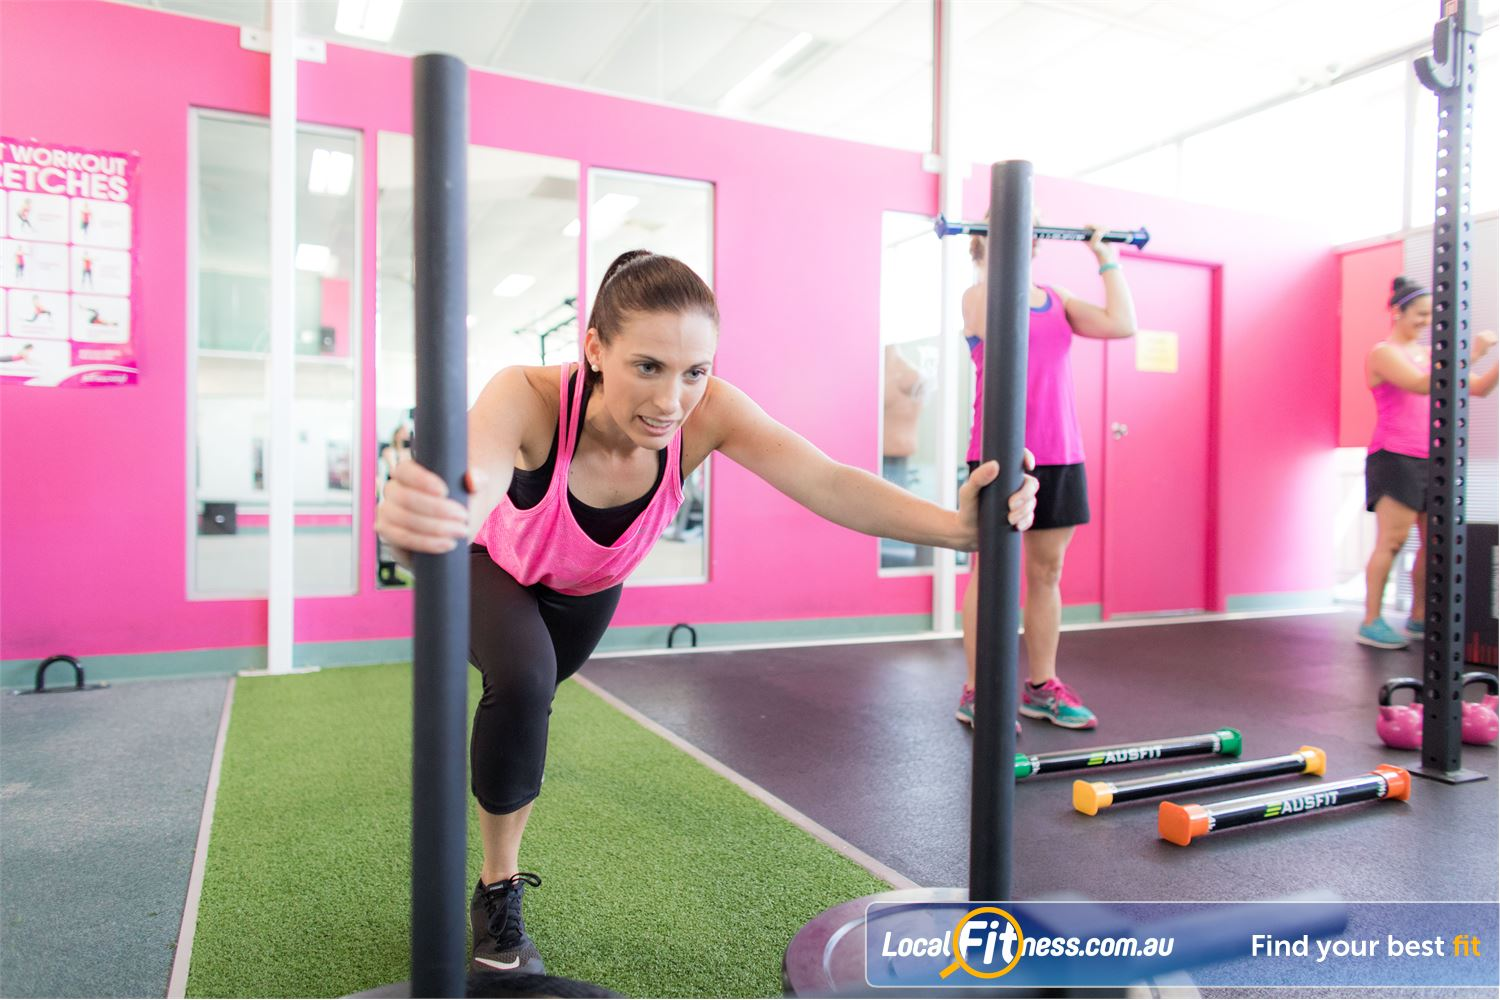 Fernwood Fitness Near Mitchelton Get into functional training in our Everton Park HIIT gym.